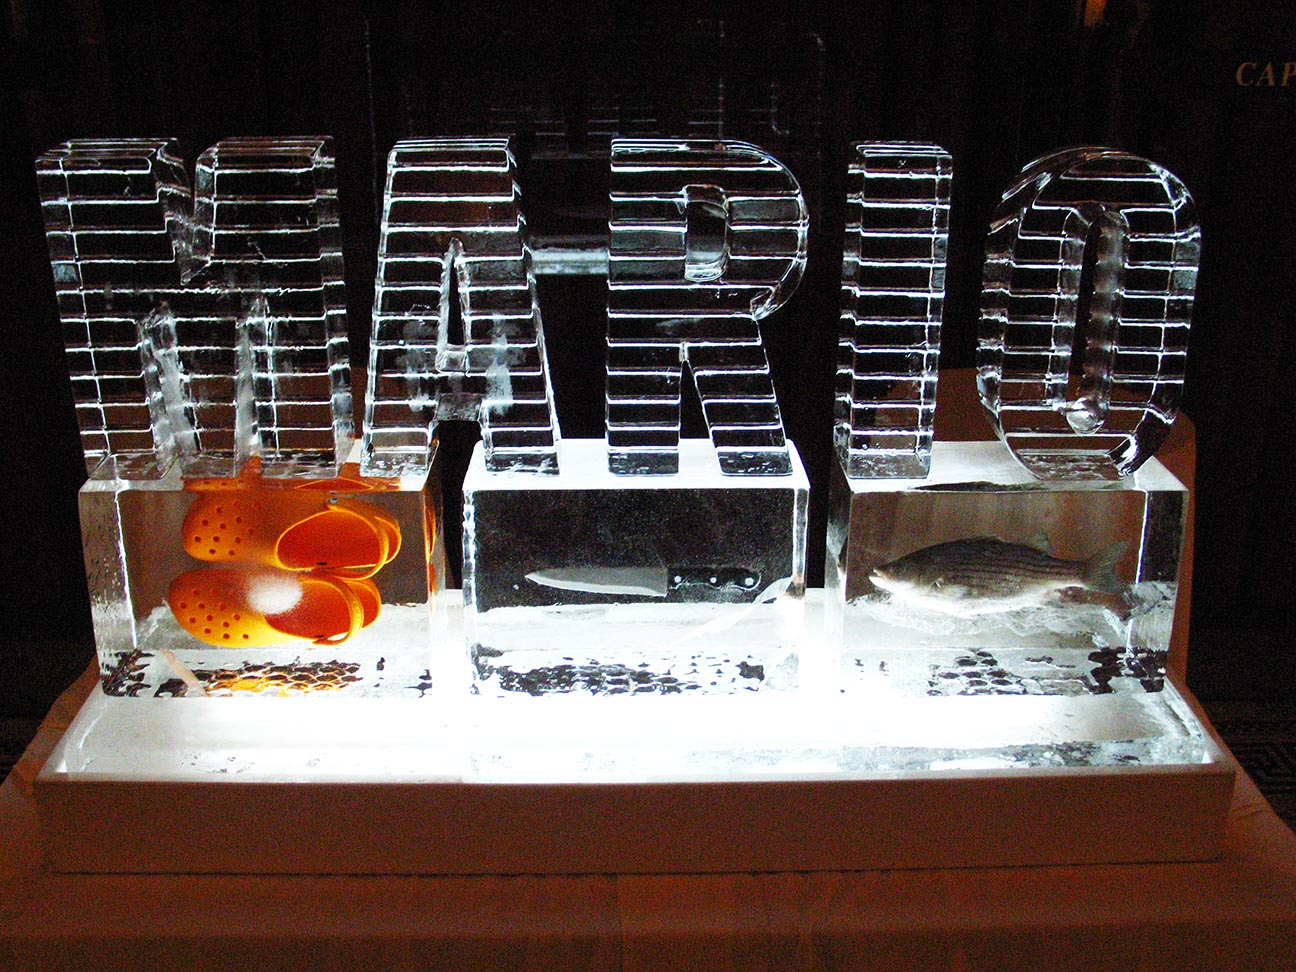 Mario Lettering & Objects in Ice 2.JPG